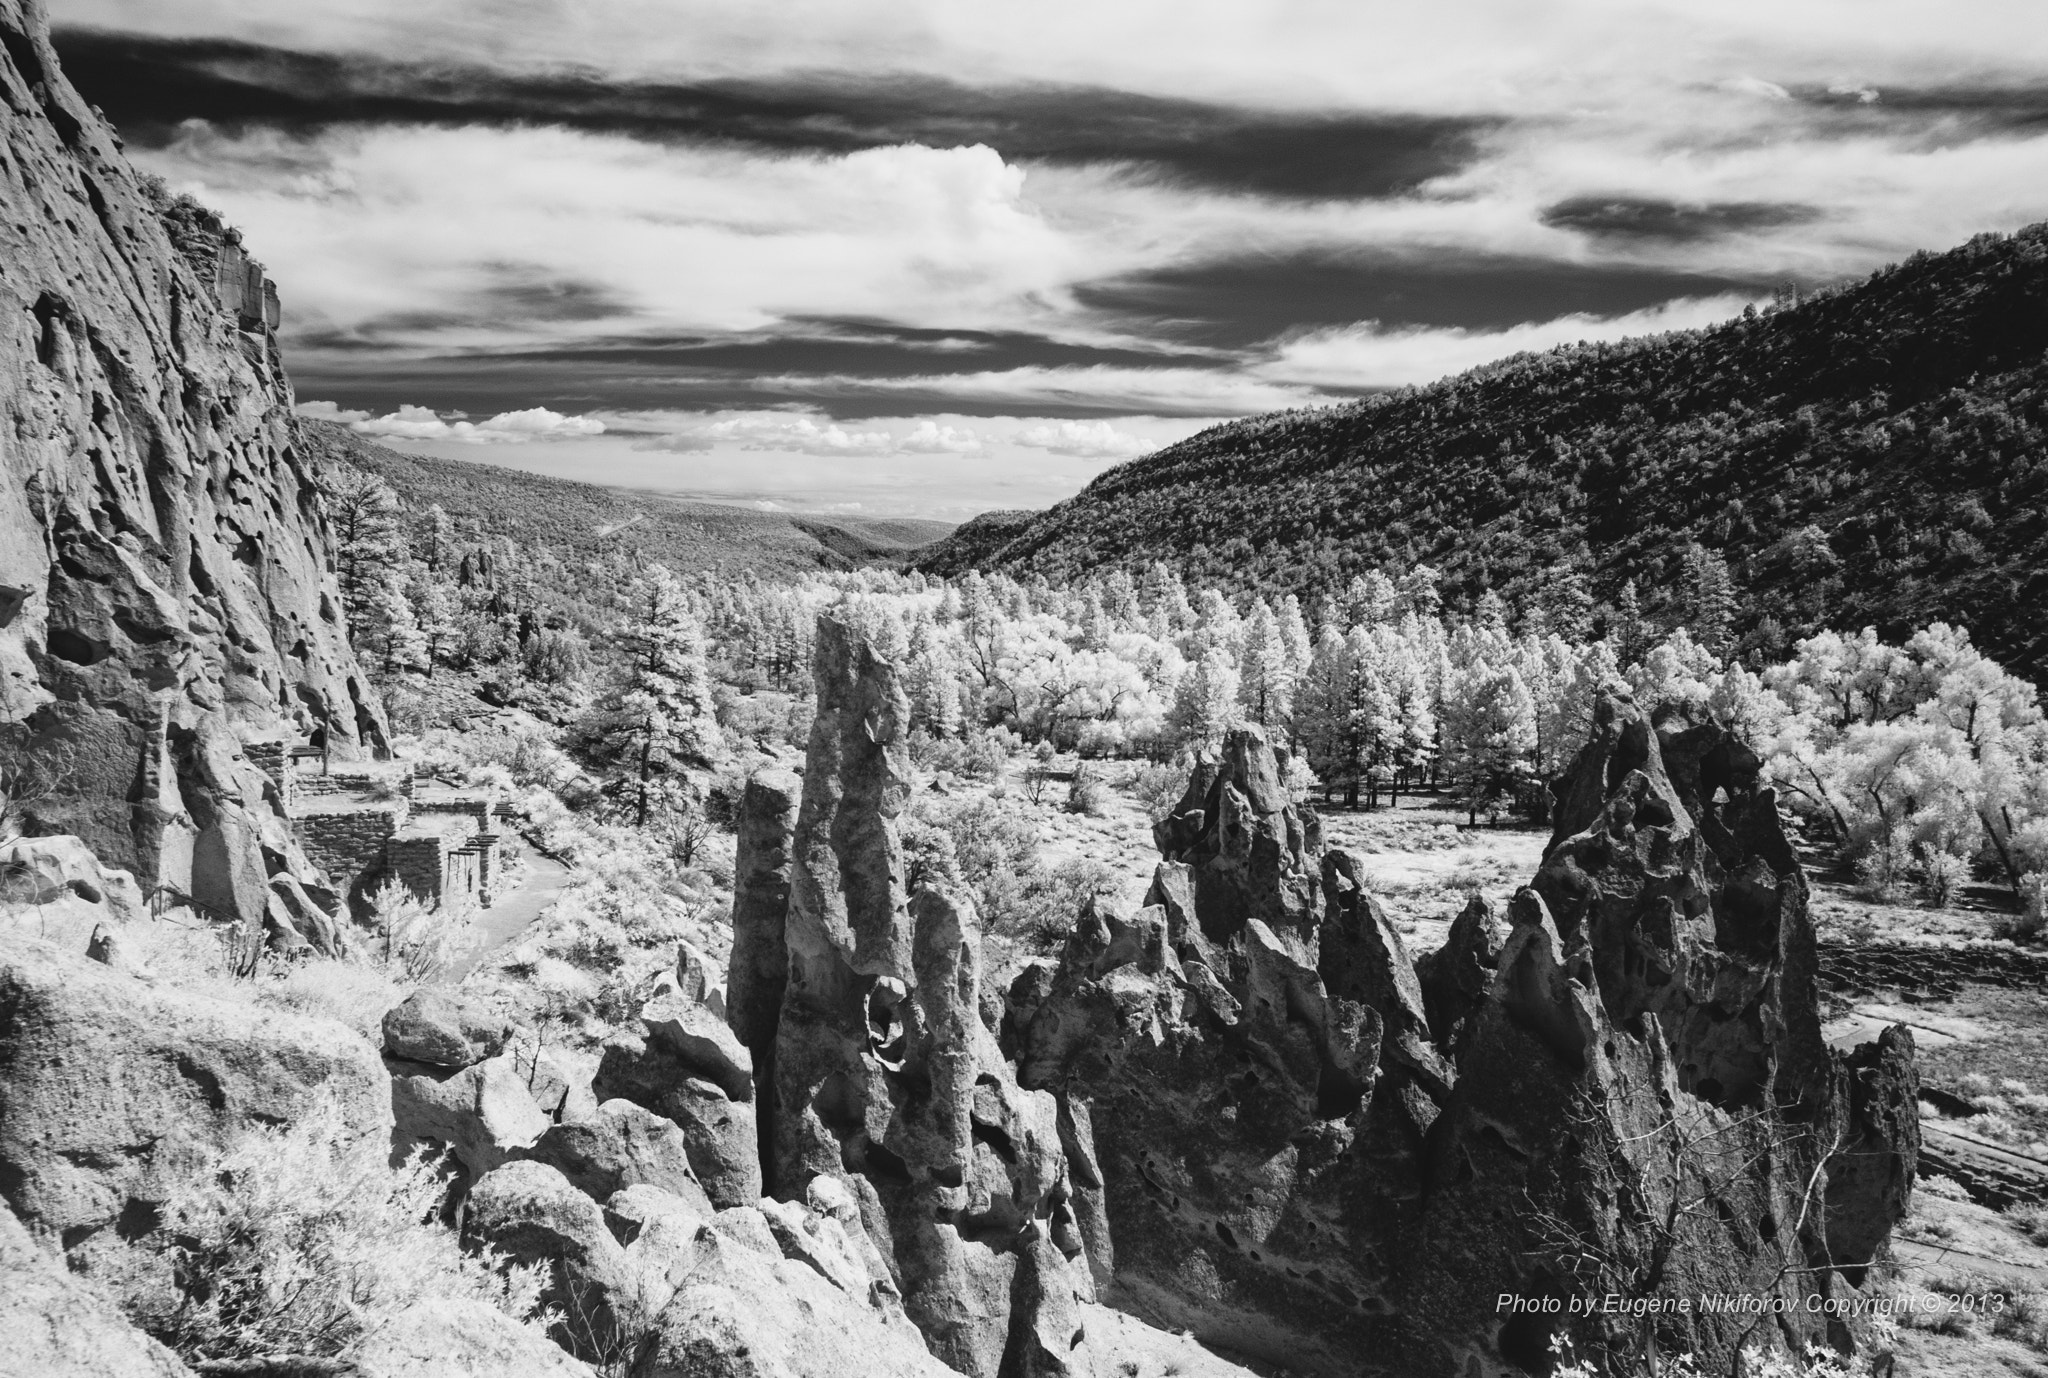 Photograph Bandelier National Monument, New Mexico by Eugene Nikiforov on 500px